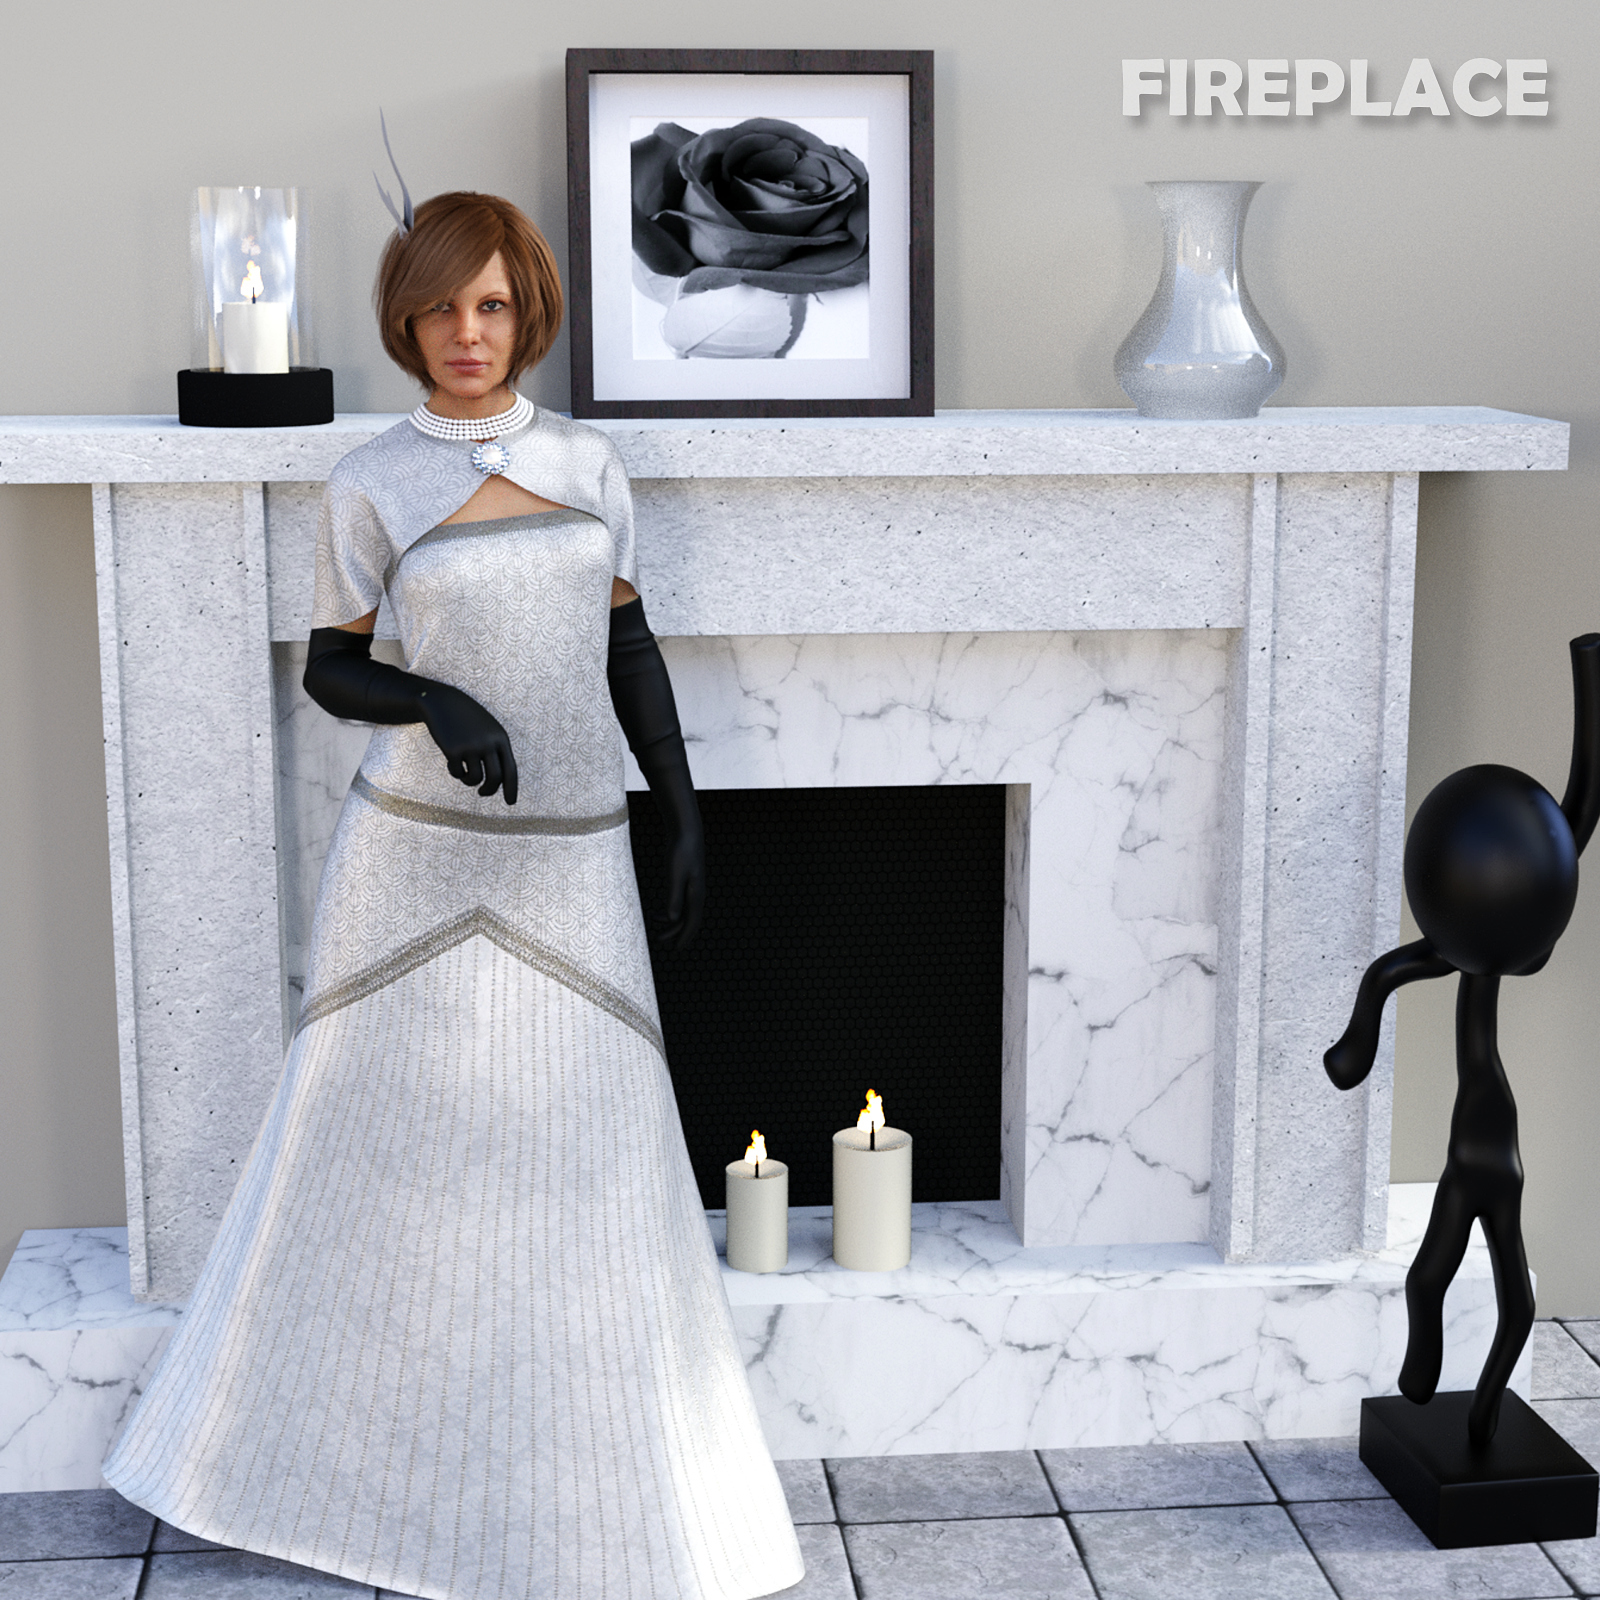 Fireplace DS by teknology3d